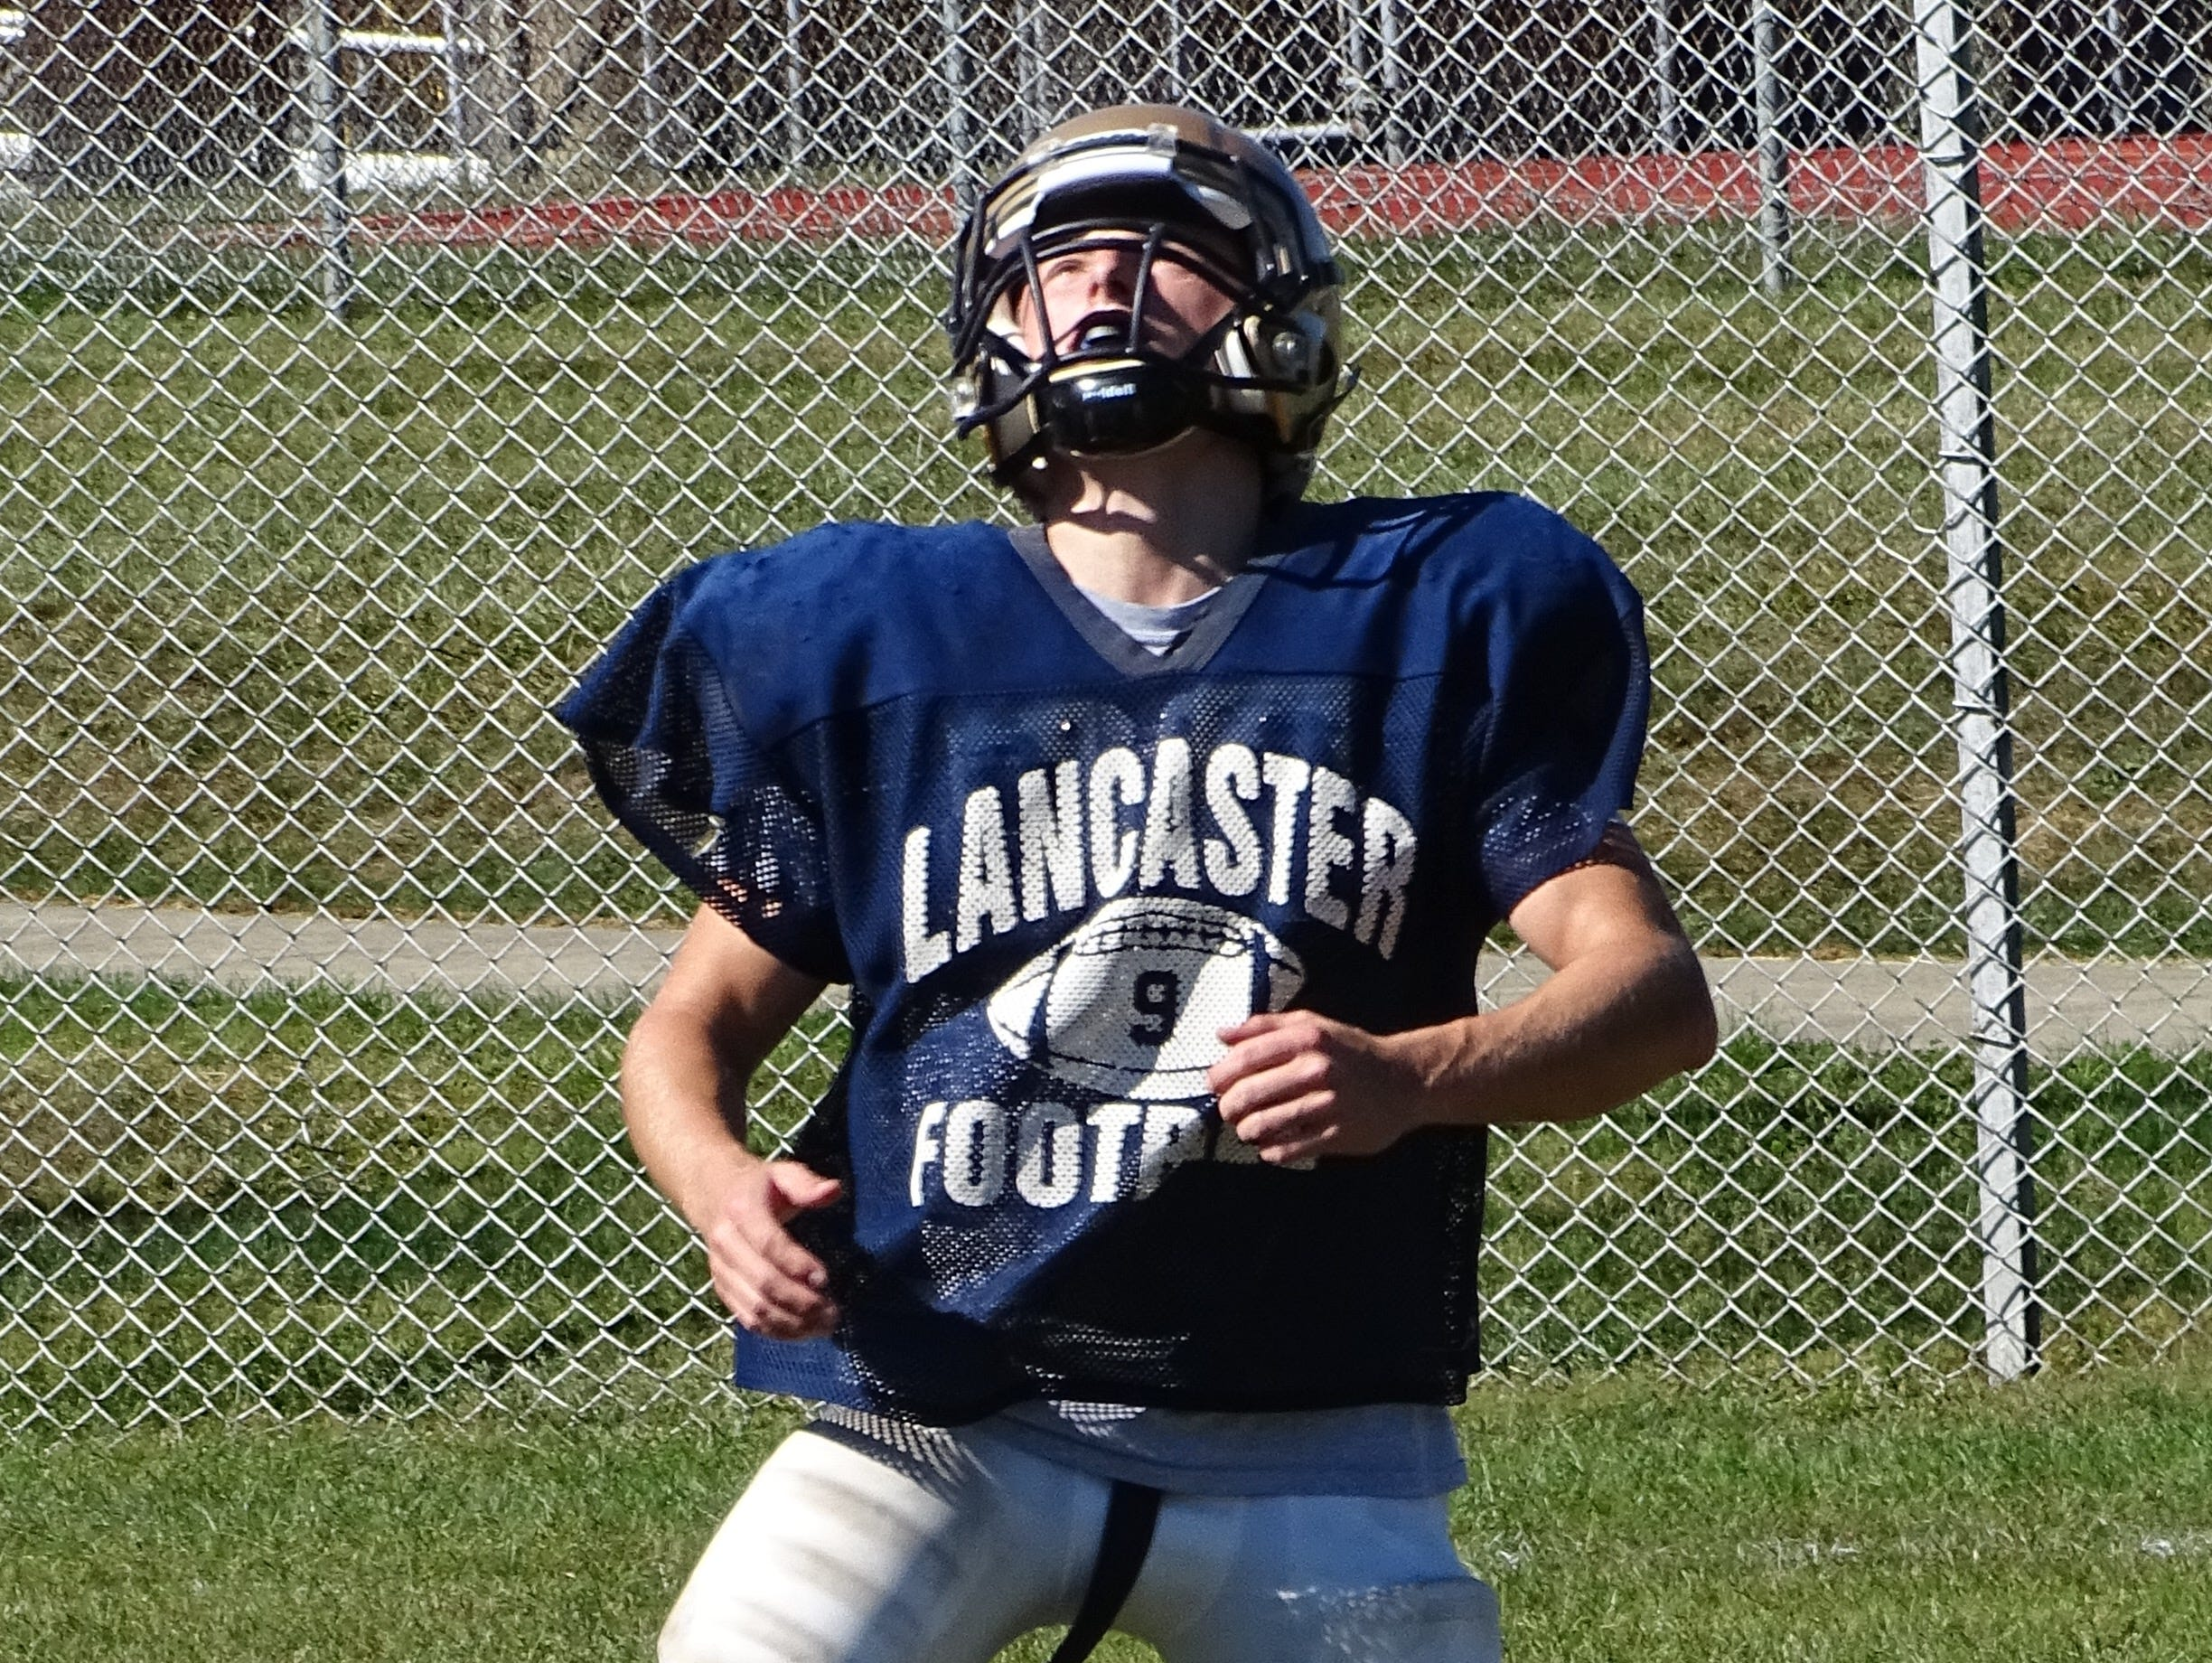 Lancaster's Ashton Walker prepares to catch a punt during Wednesday's practice. Walker has already returned a punt for a touchdown this season.